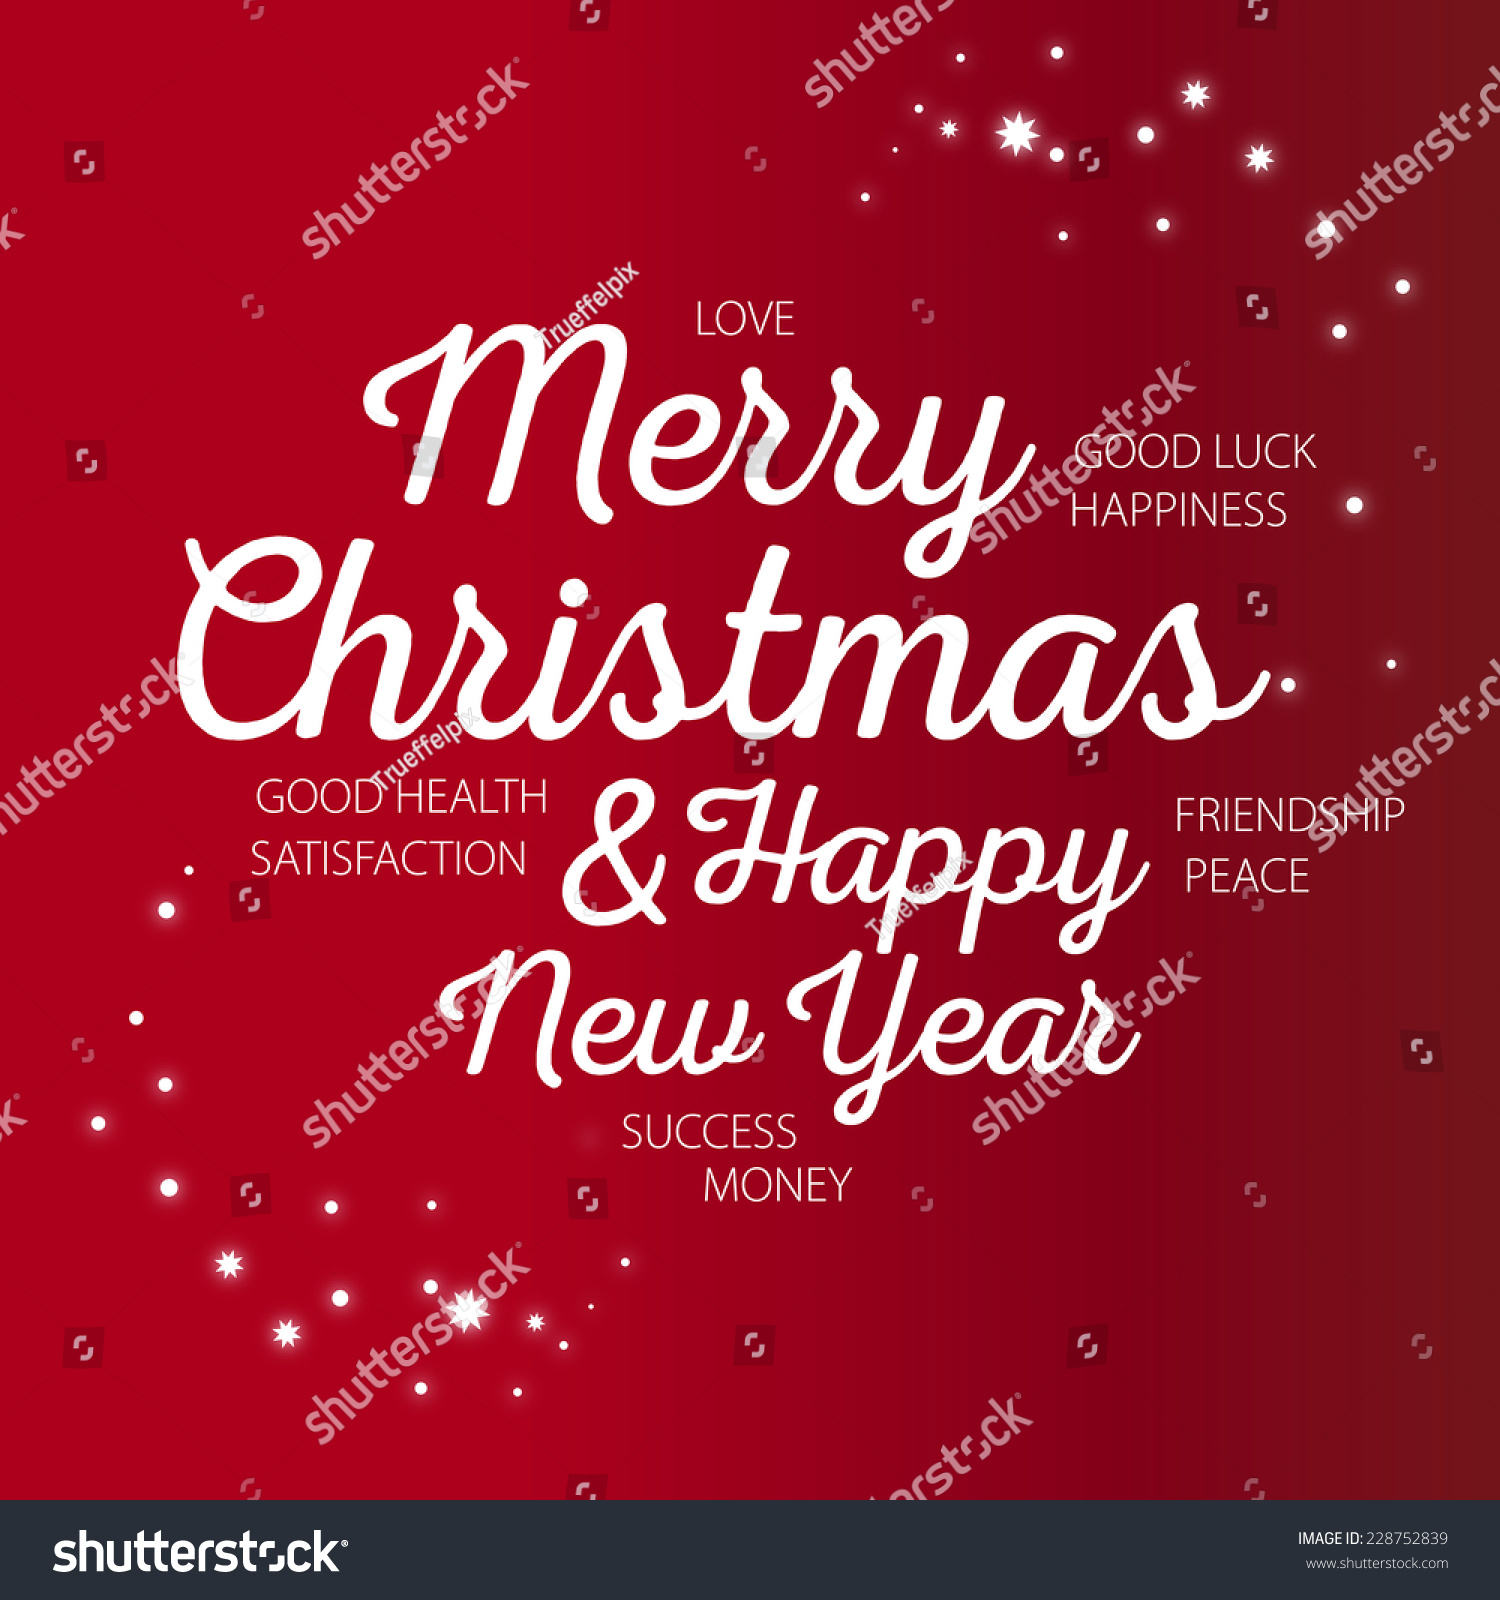 Royalty Free Stock Illustration Of Merry Christmas Happy New Year